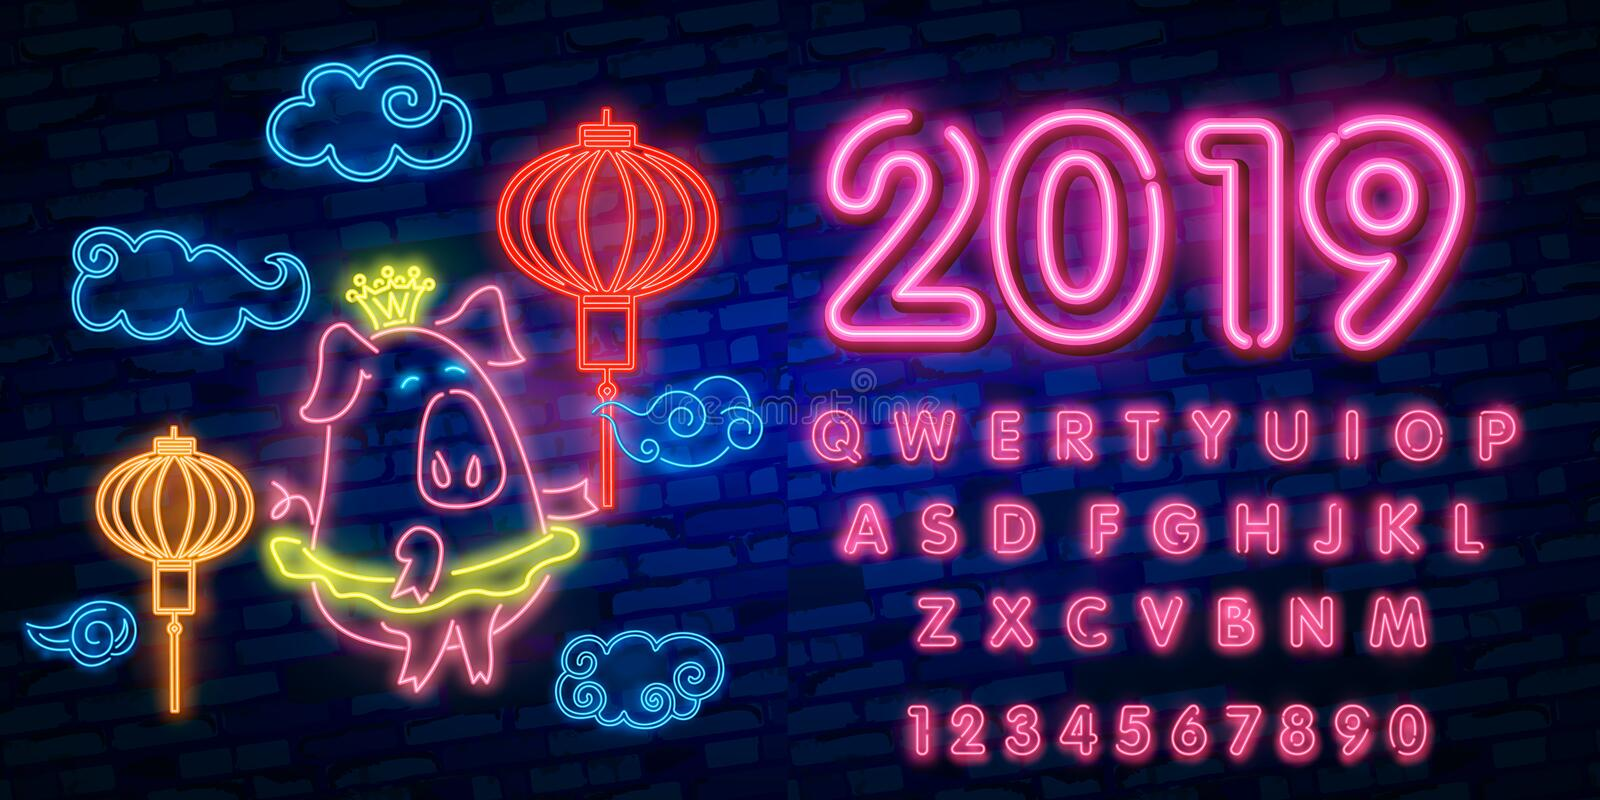 Happy Chinese New Year 2019 year of the pig greeting card in neon style. Chinese New Year Design Template, Zodiac sign for greetin stock illustration